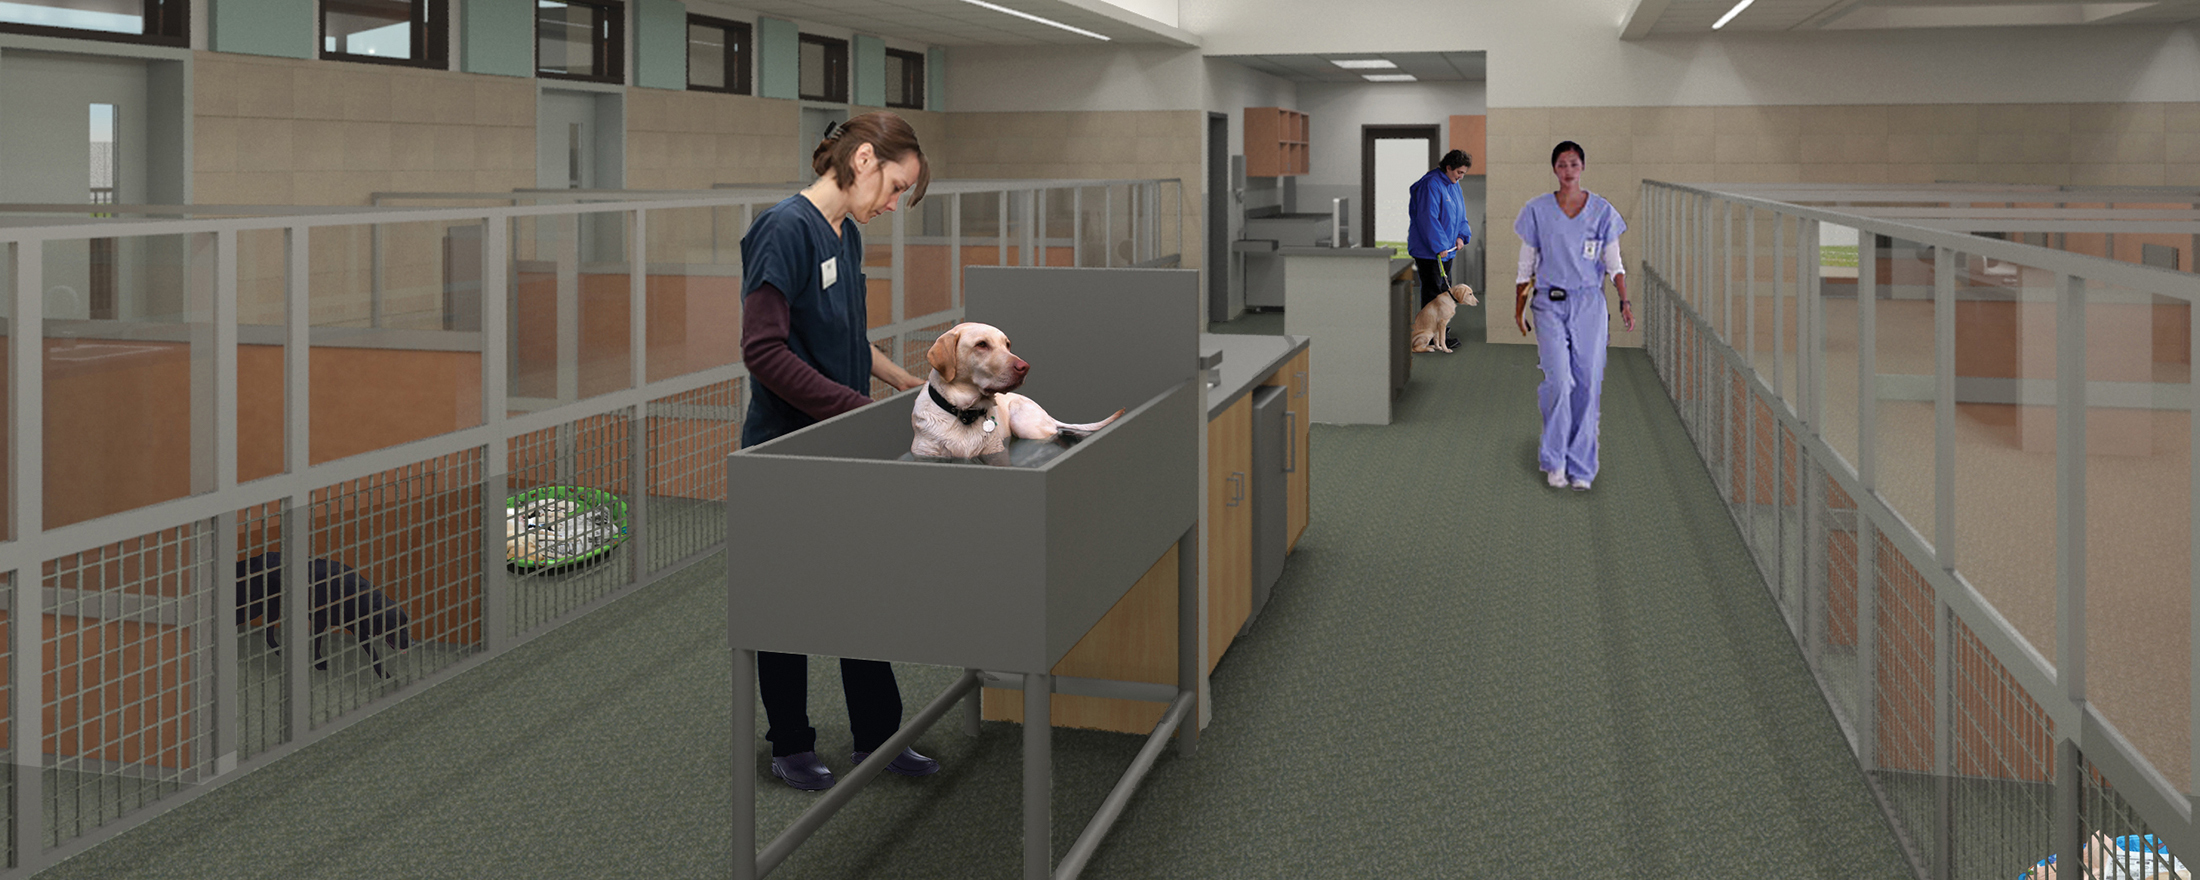 An architect's rendering of the new Puppy Center nursery